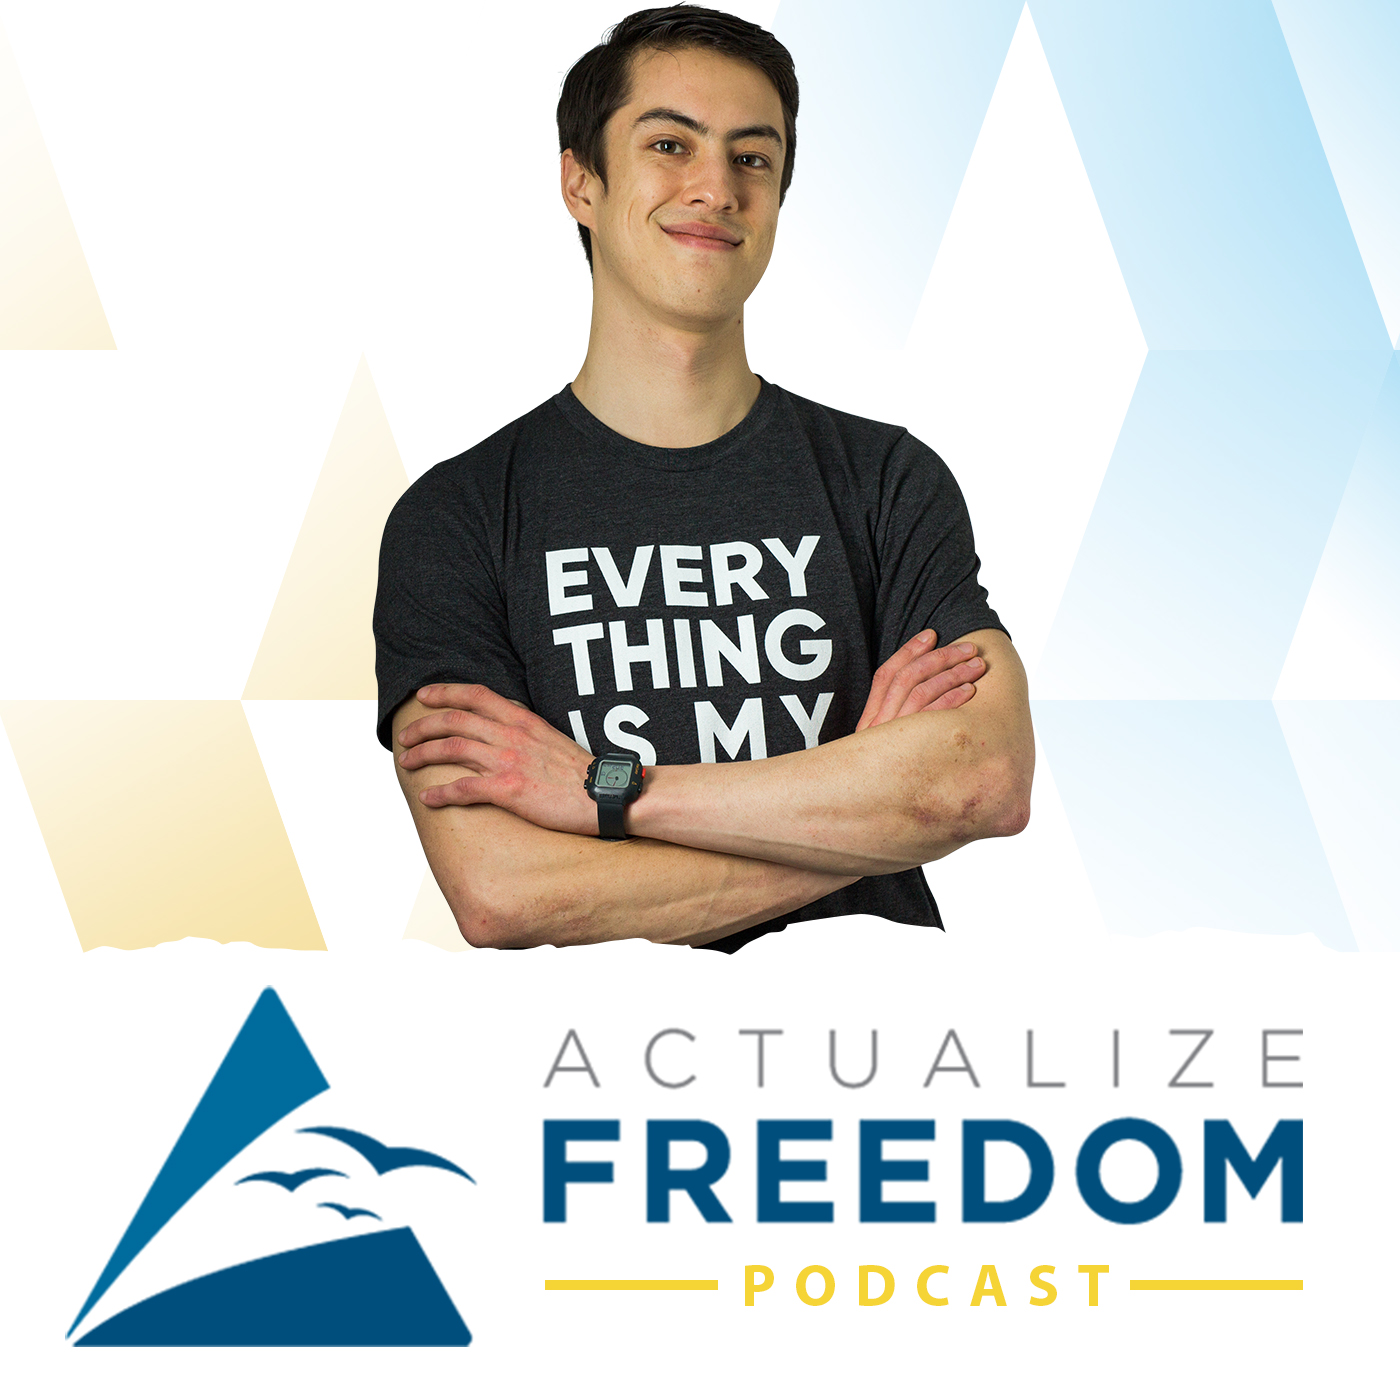 Actualize Freedom | Amazon FBA with Danny Carlson | Private Label Ecommerce Selling on Amazon show art